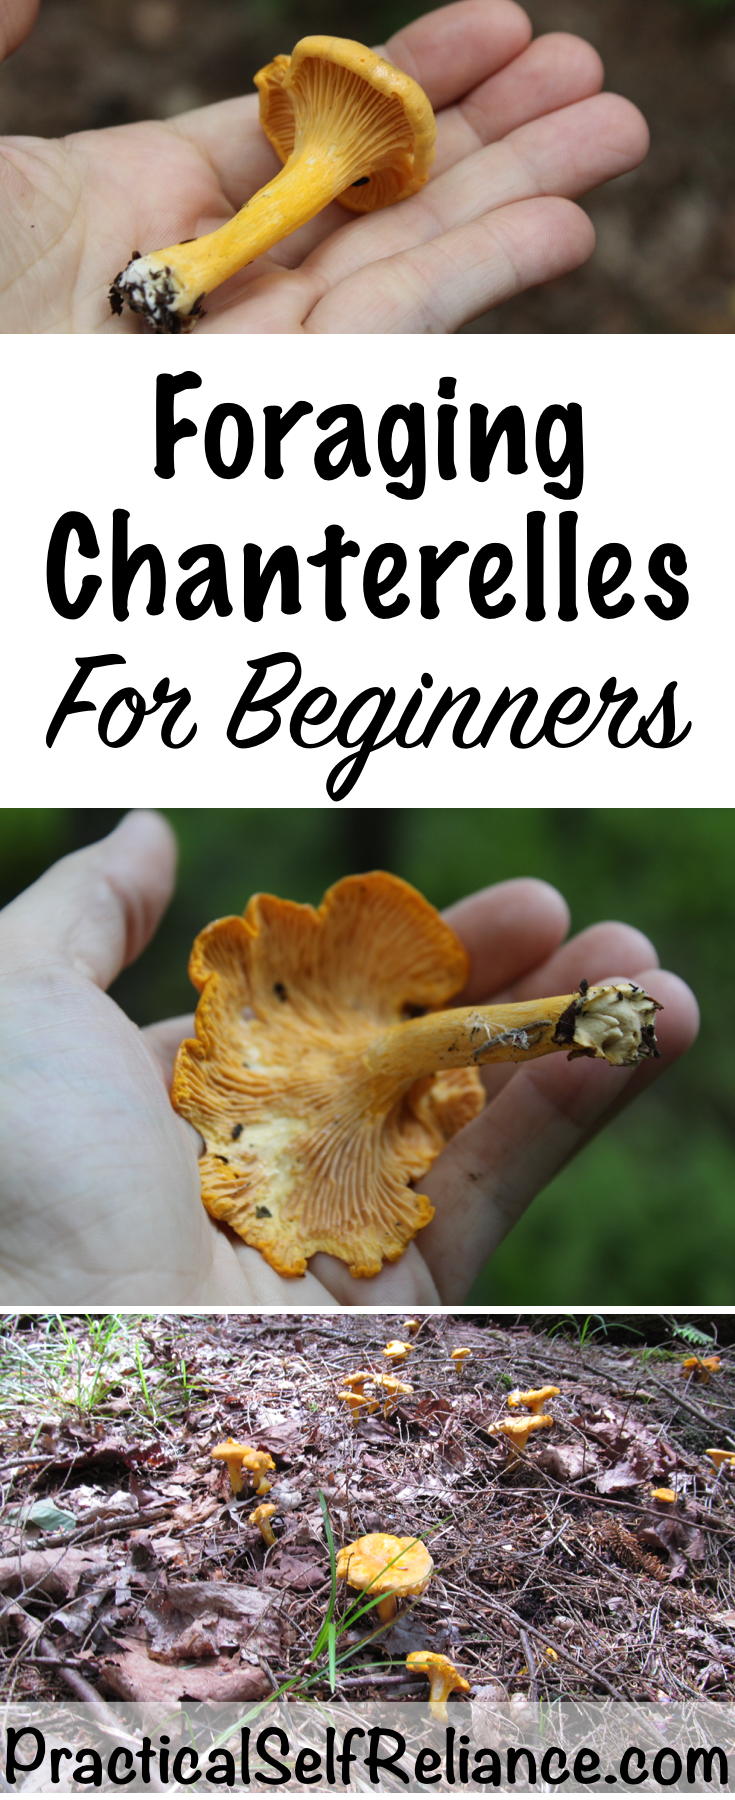 Foraging Chanterelles for Beginners